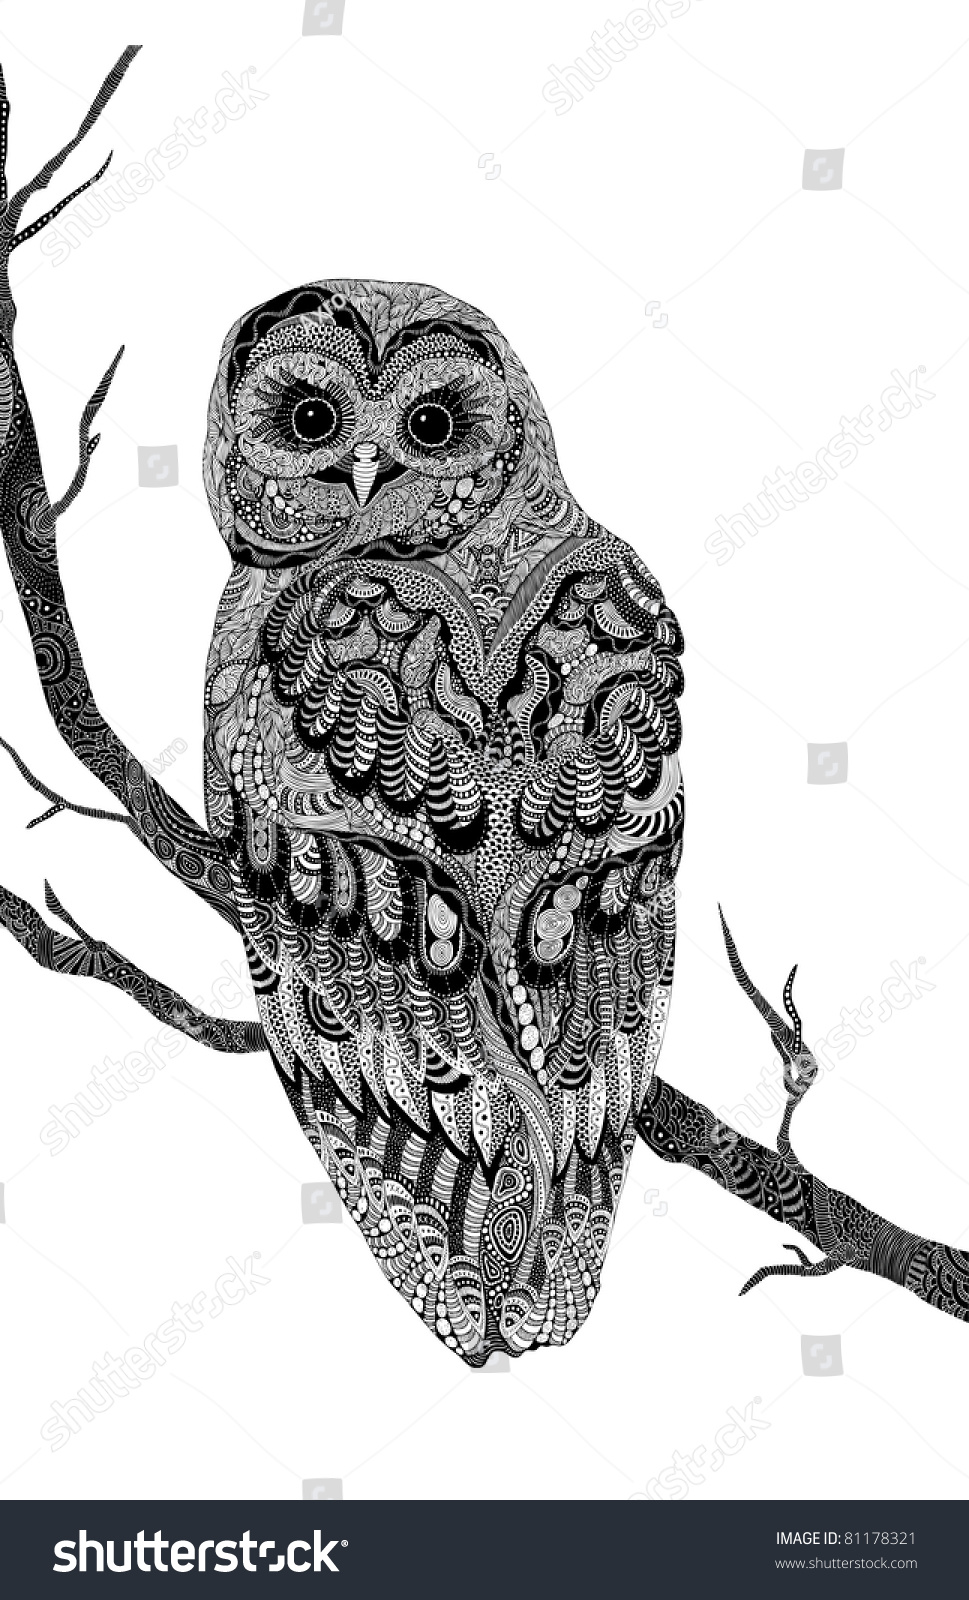 Very Detailed Handdrawn Psychedelic Owl Branch Stock ...